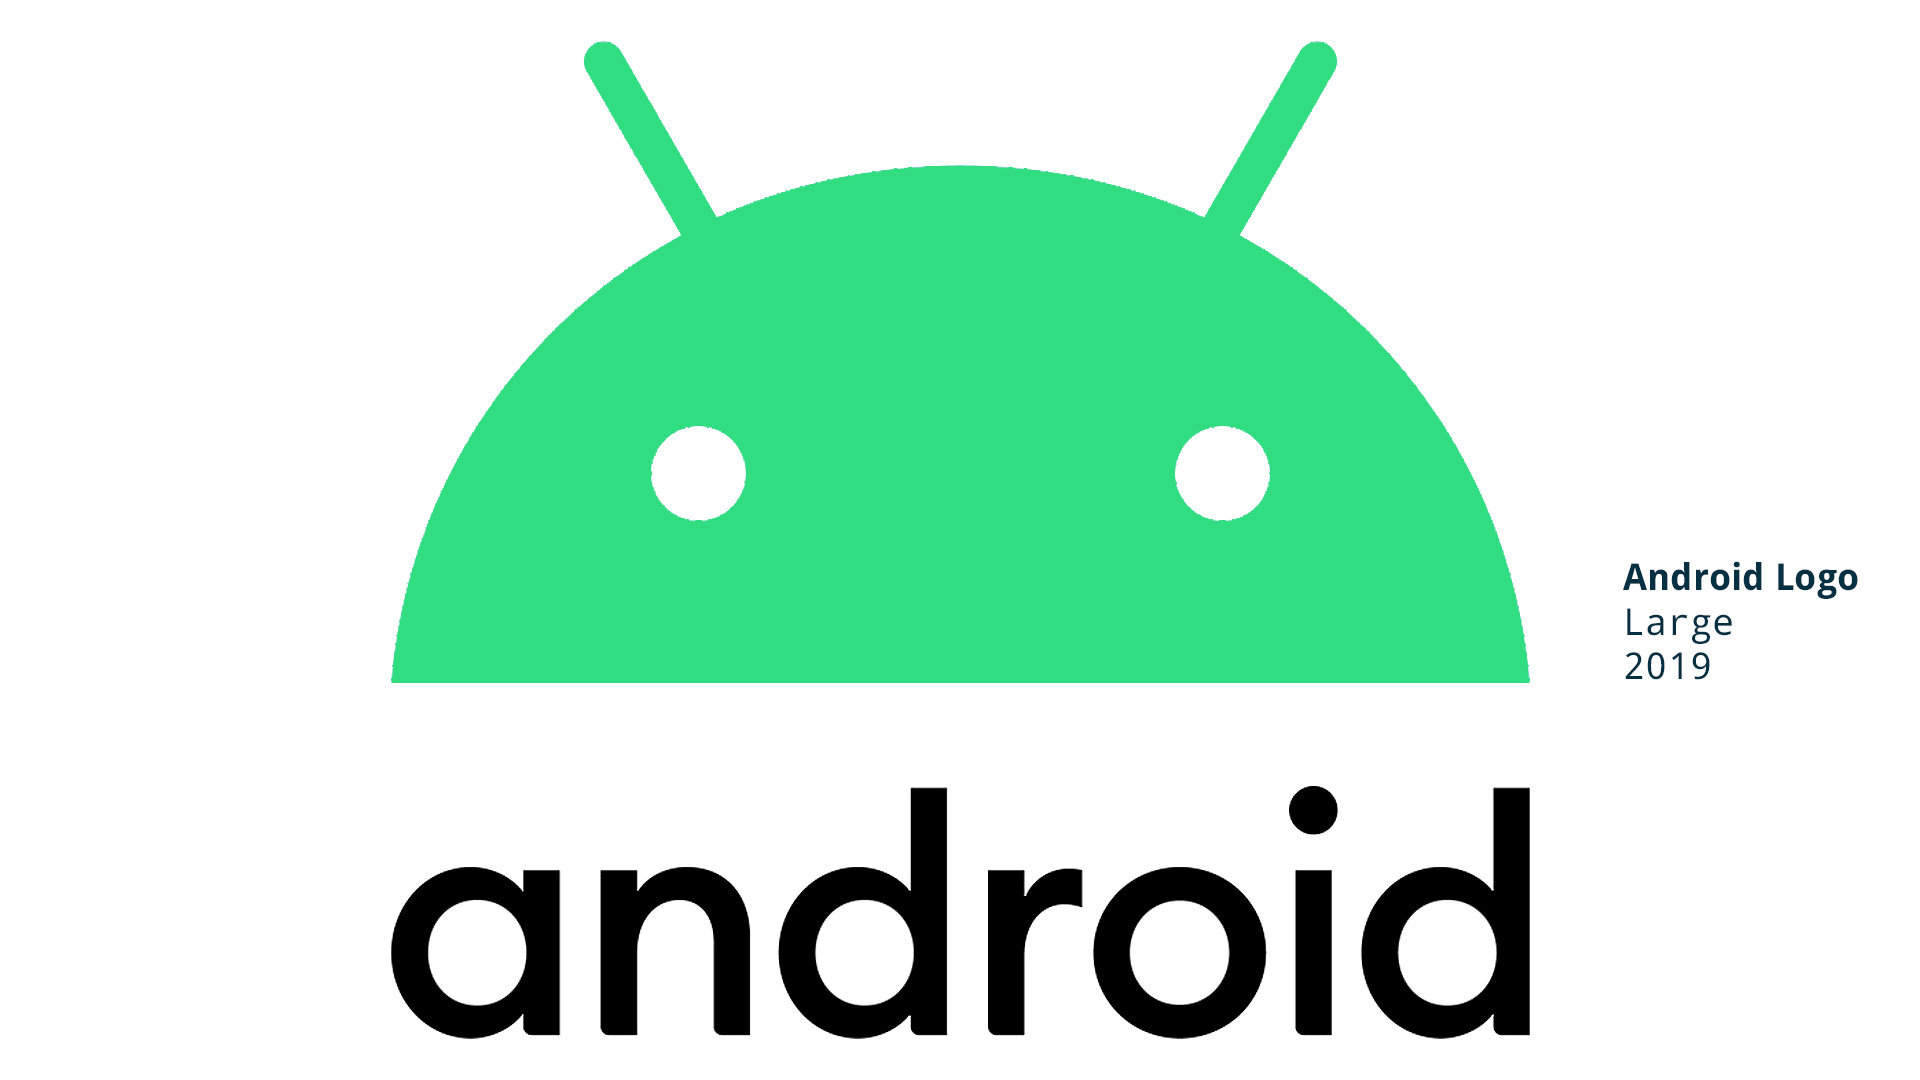 New Android Logo And Brand Update For 2019 Slashgear